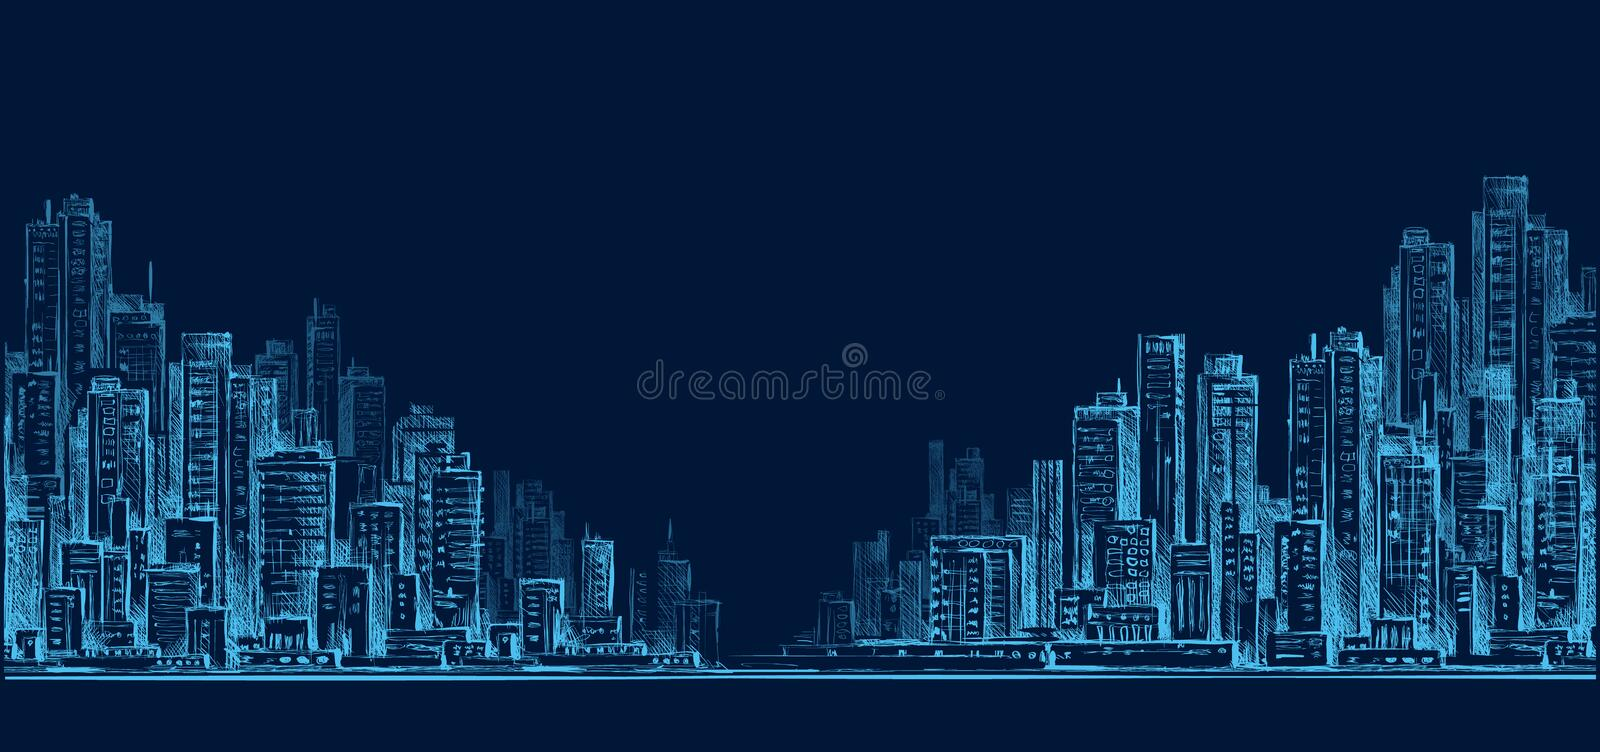 City skyline panorama at night, hand drawn cityscape, drawing architecture illustration royalty free illustration